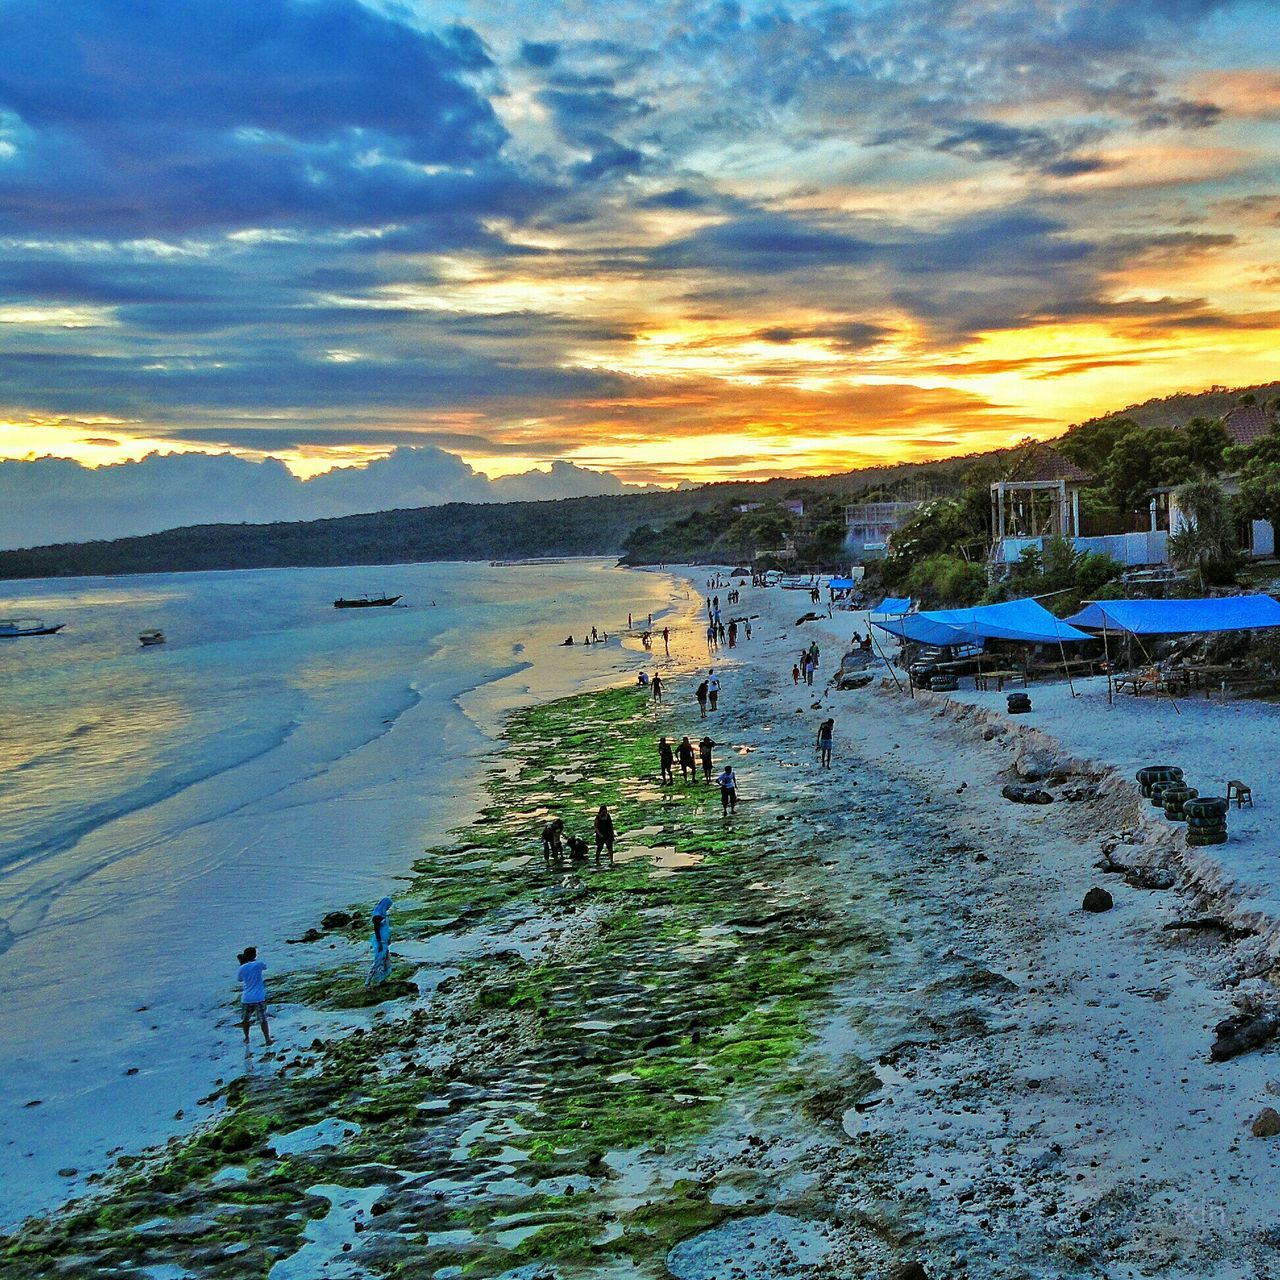 nature, water, scenics, beauty in nature, sunset, sky, real people, sea, vacations, outdoors, tranquility, cloud - sky, leisure activity, tranquil scene, beach, lifestyles, large group of people, men, travel destinations, women, swimming, day, people